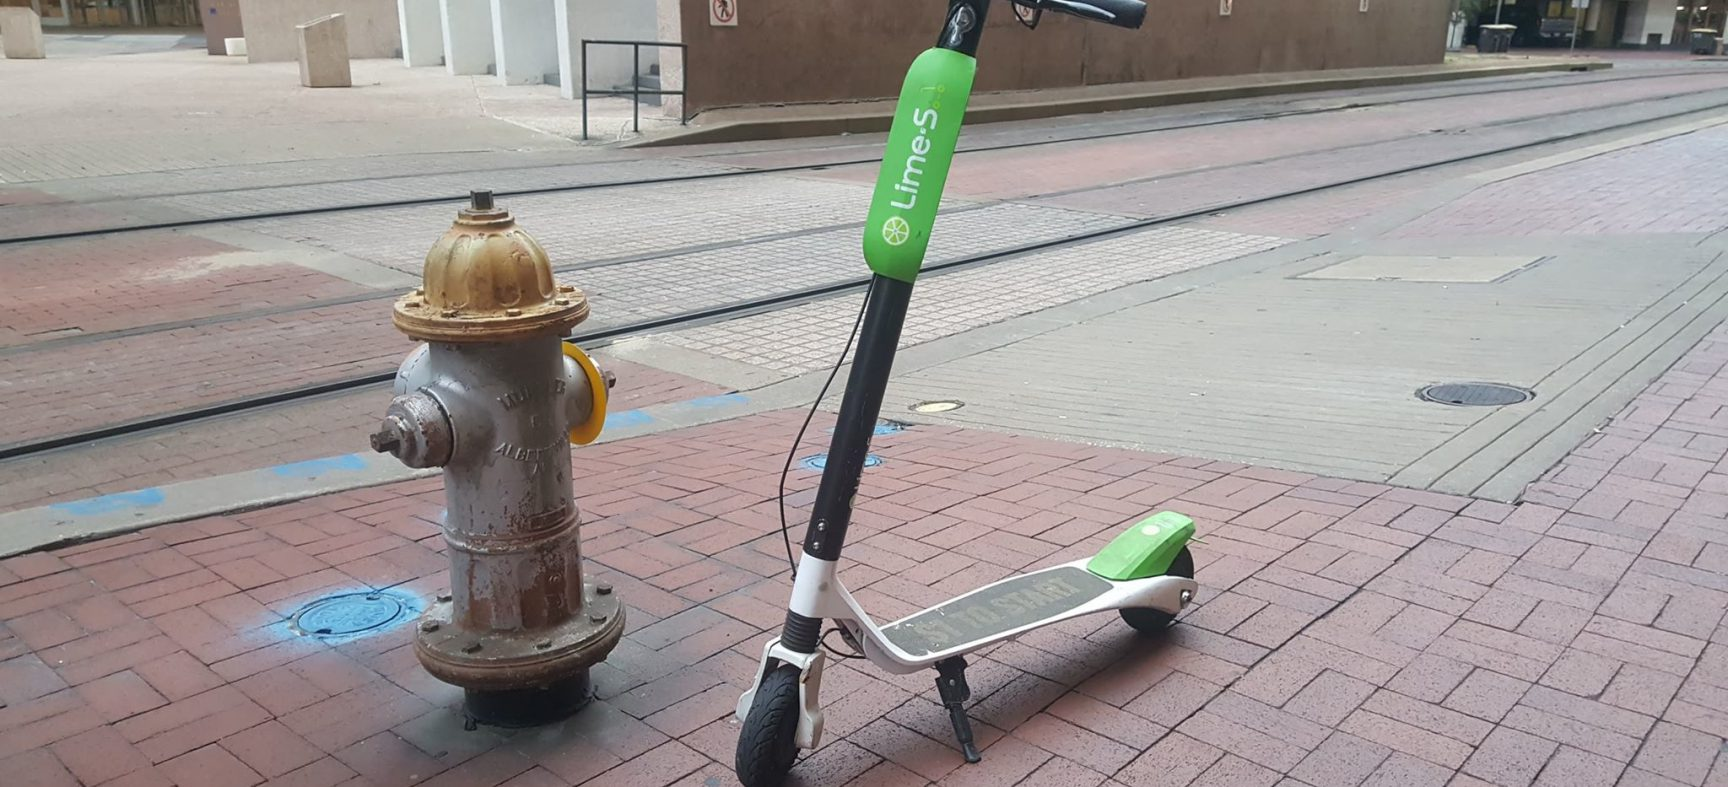 Electric scooters in Dallas: what you need to know